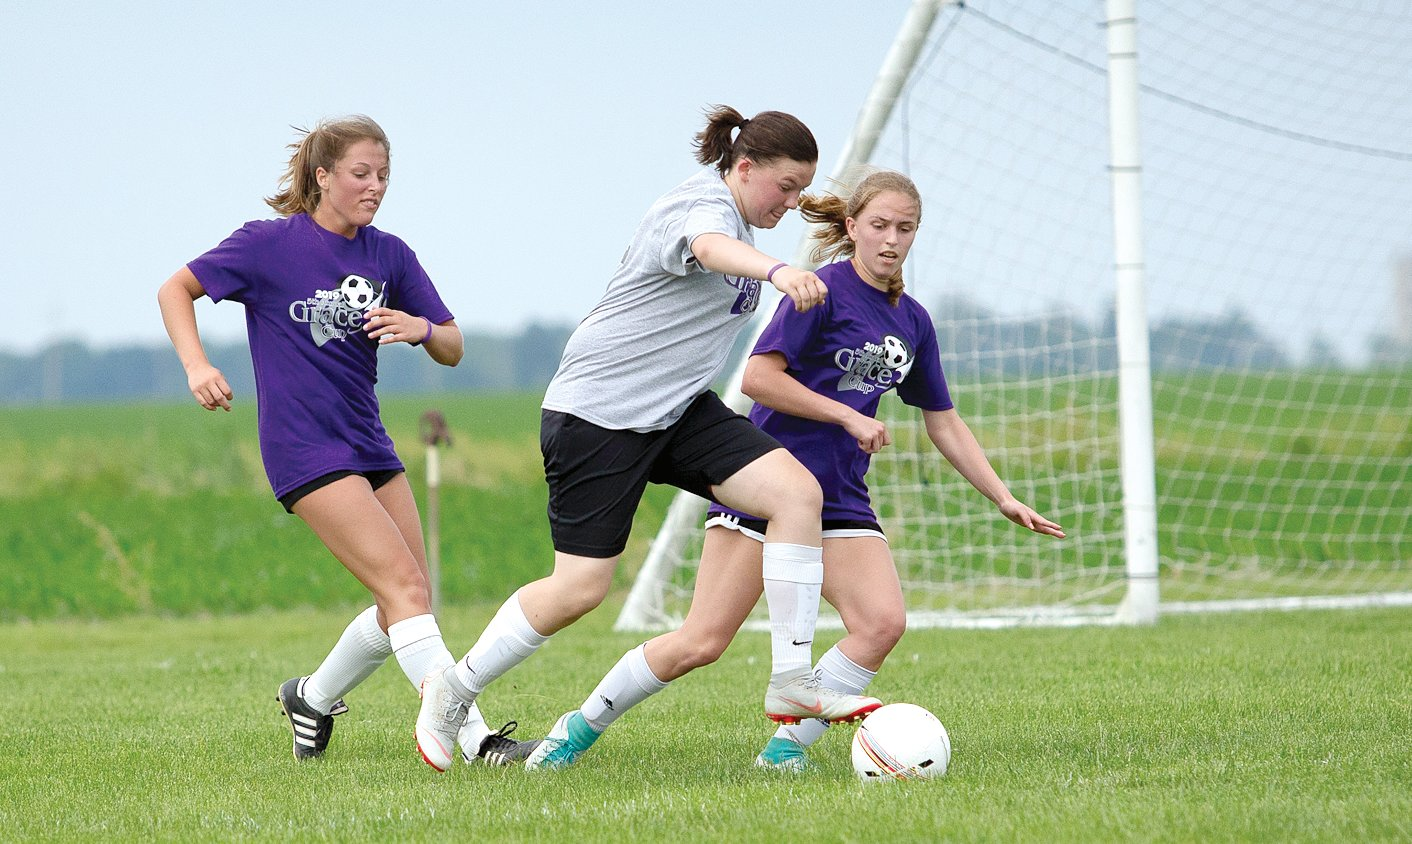 Hillsboro's Aubry Rupert takes on two defenders during the Grace Cup on Saturday, June 8, at Terry Todt RHSA Field in Raymond. Rupert, one of five players from Hillsboro to take part in the charity all-star game, scored a goal in the Gray team's 3-2 victory over the Purple team.